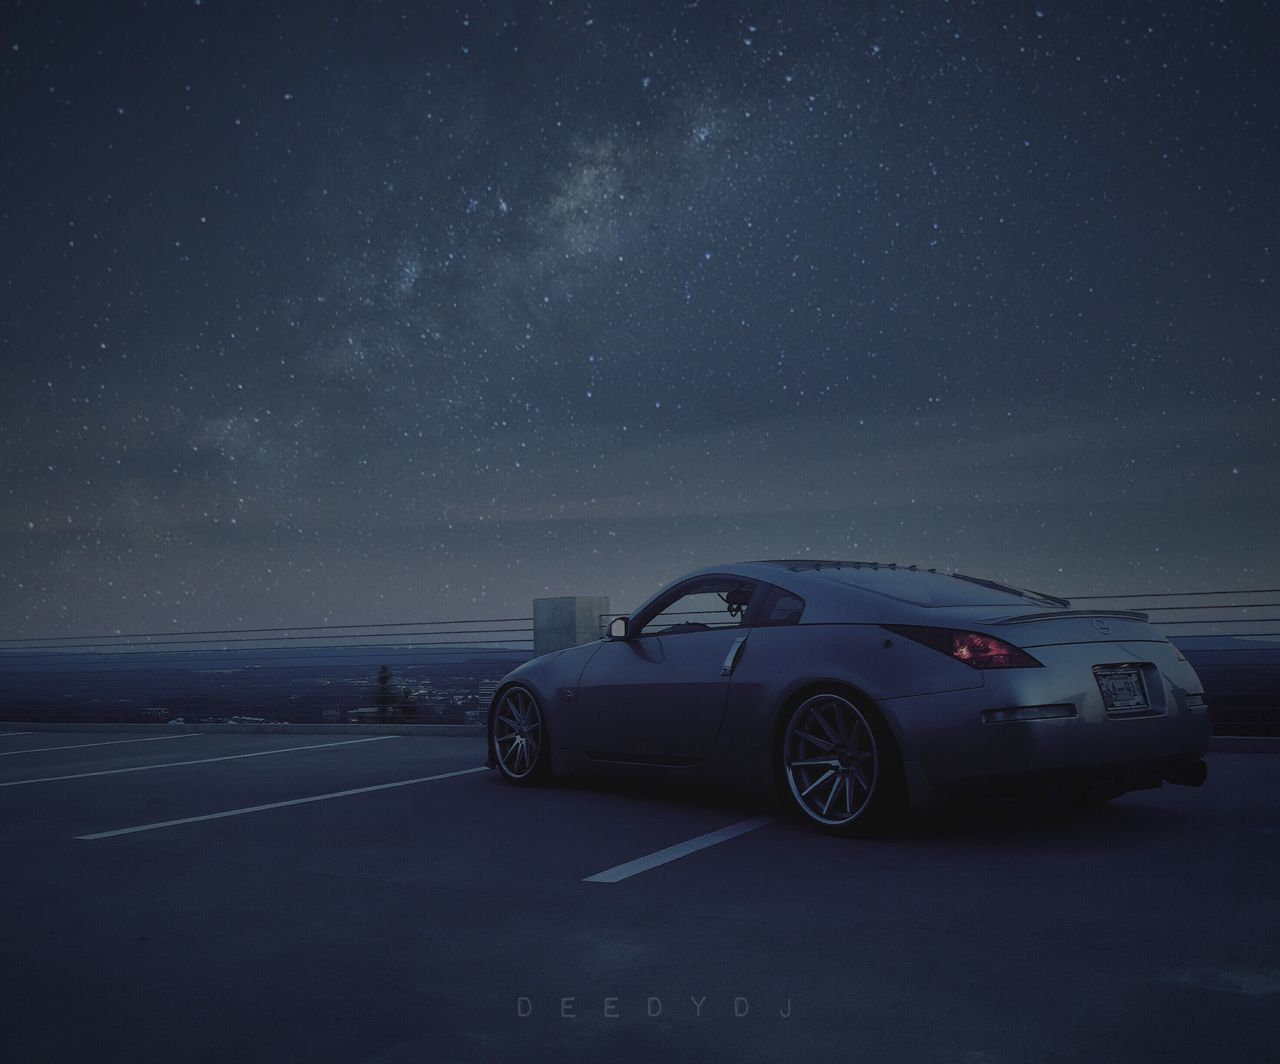 car, transportation, road, star - space, land vehicle, no people, road trip, night, sky, nature, scenics, outdoors, beauty in nature, horizon over water, water, galaxy, astronomy